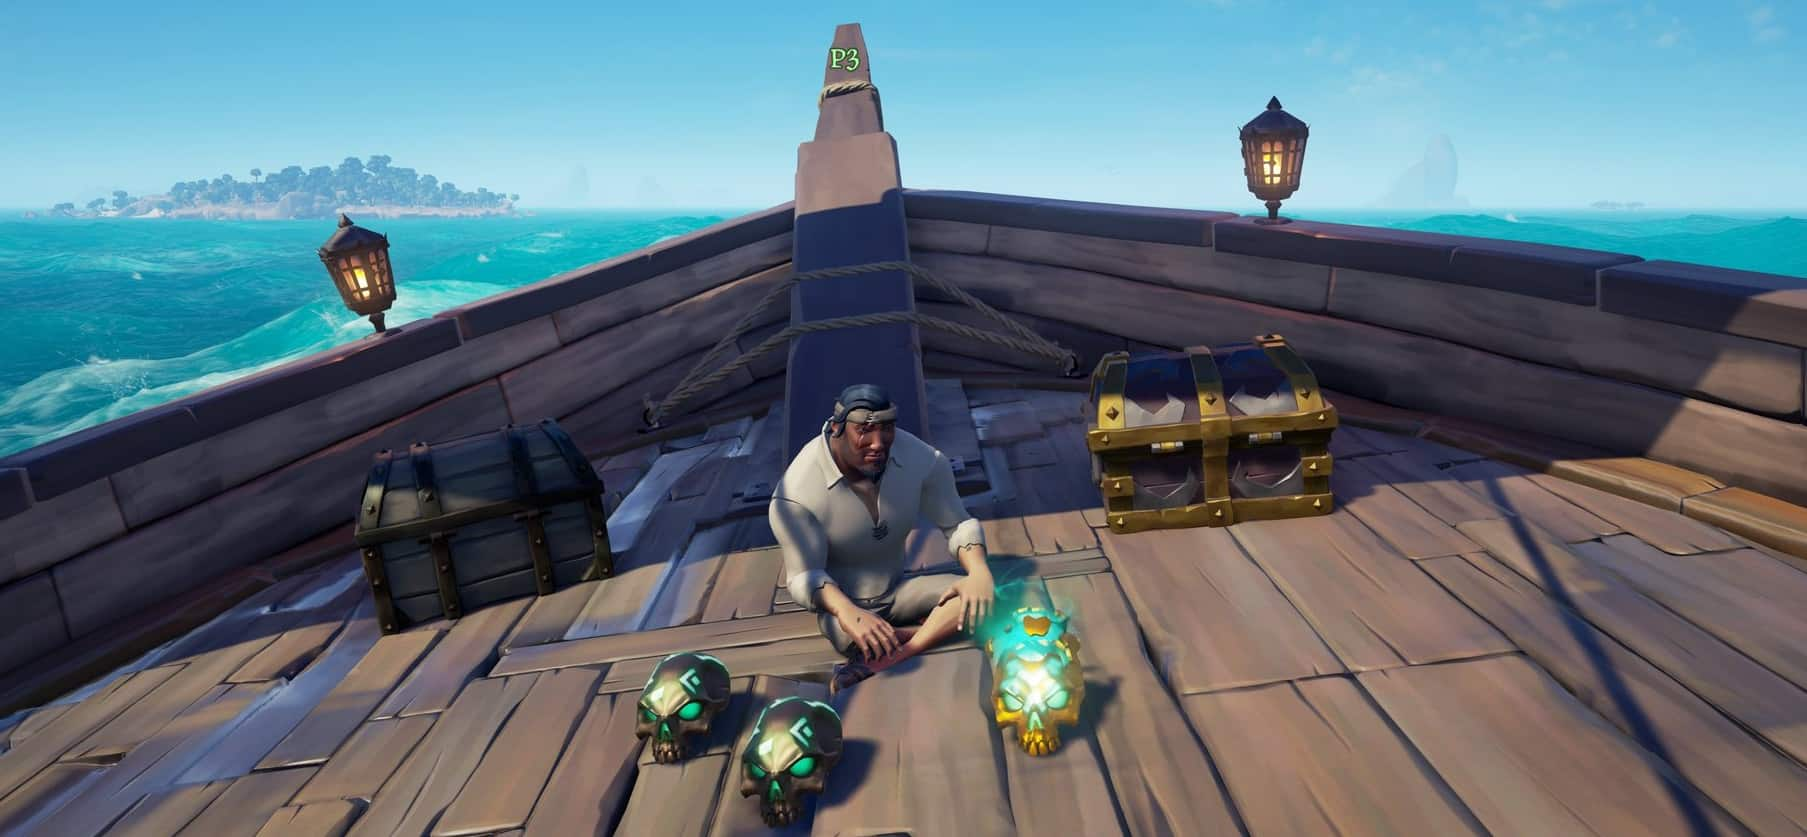 Sea Of Thieves Update Brings Major Fixes And Changes This Week